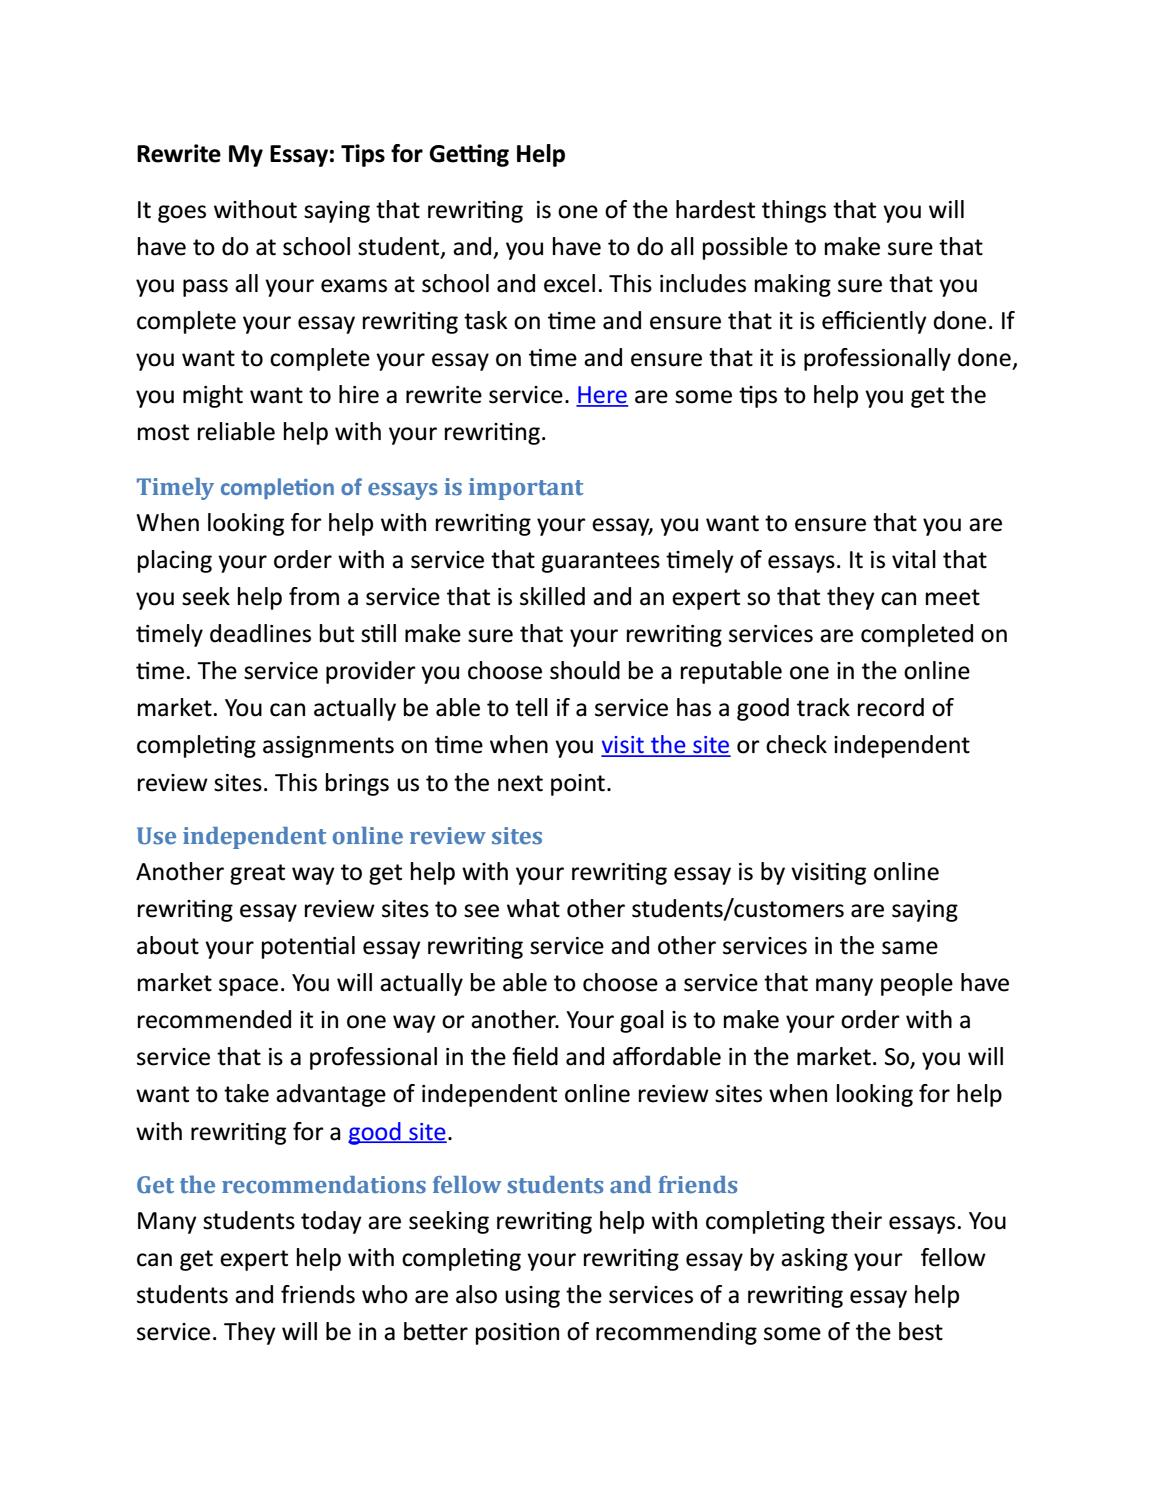 Organic Chemistry Homework Assignment Help  Report Writing Buy also Thesis Examples In Essays Rewrite My Essay Tips For Getting Help By Reword Essay  Issuu How To Write A High School Application Essay